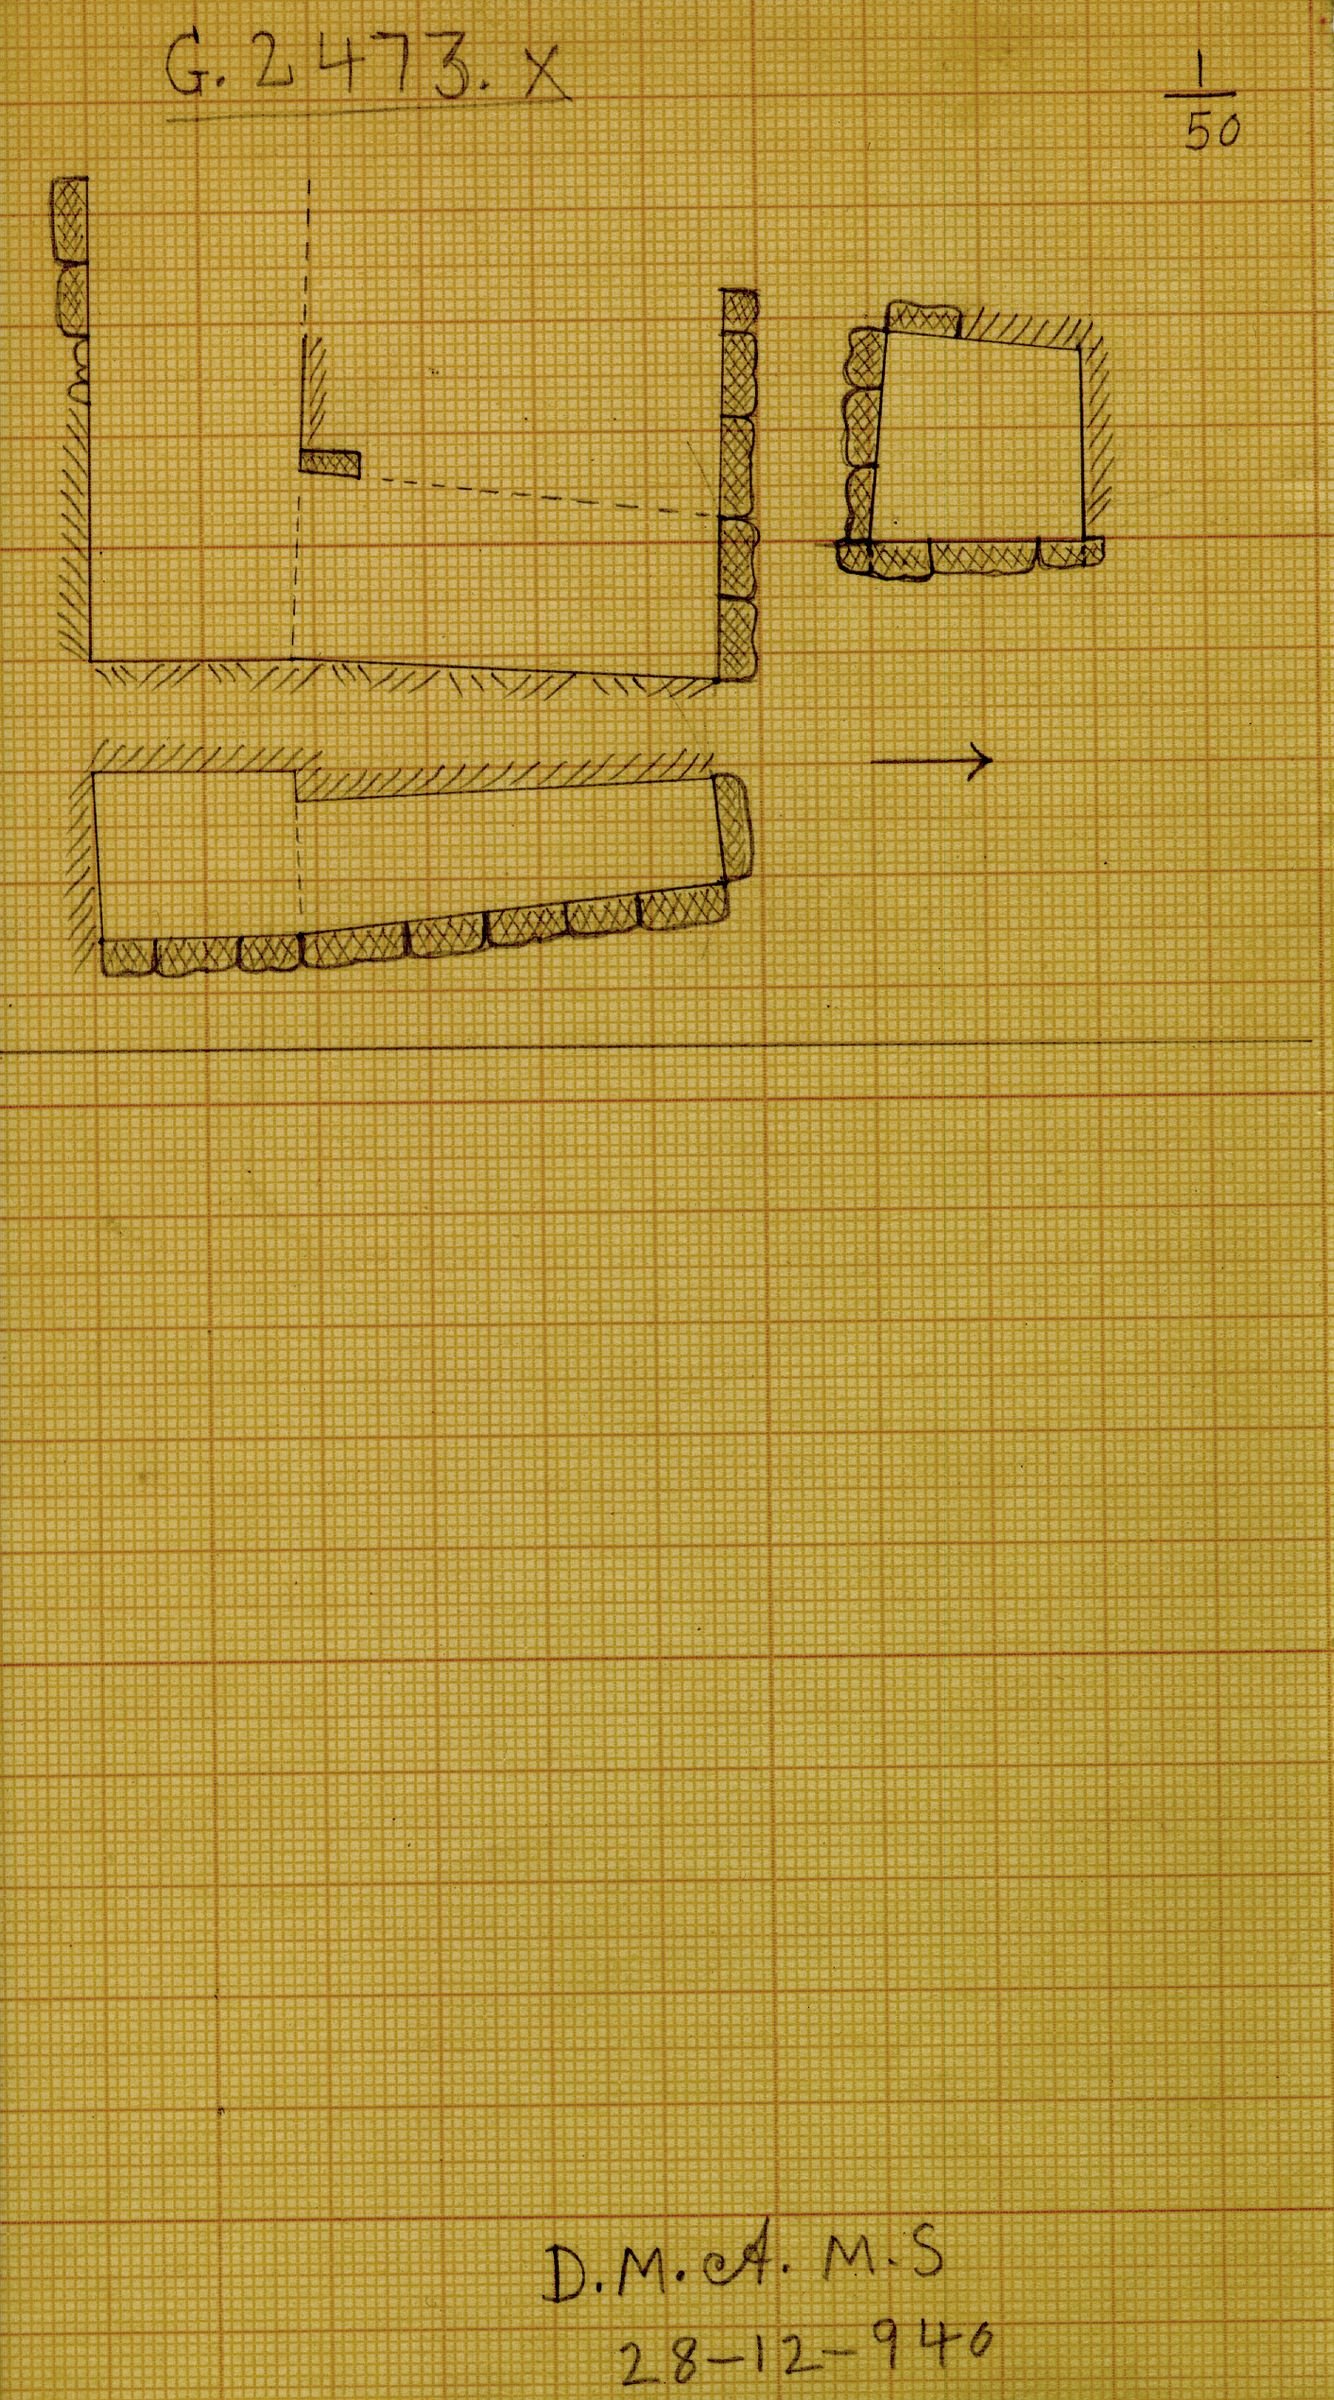 Maps and plans: G 2473, Shaft X